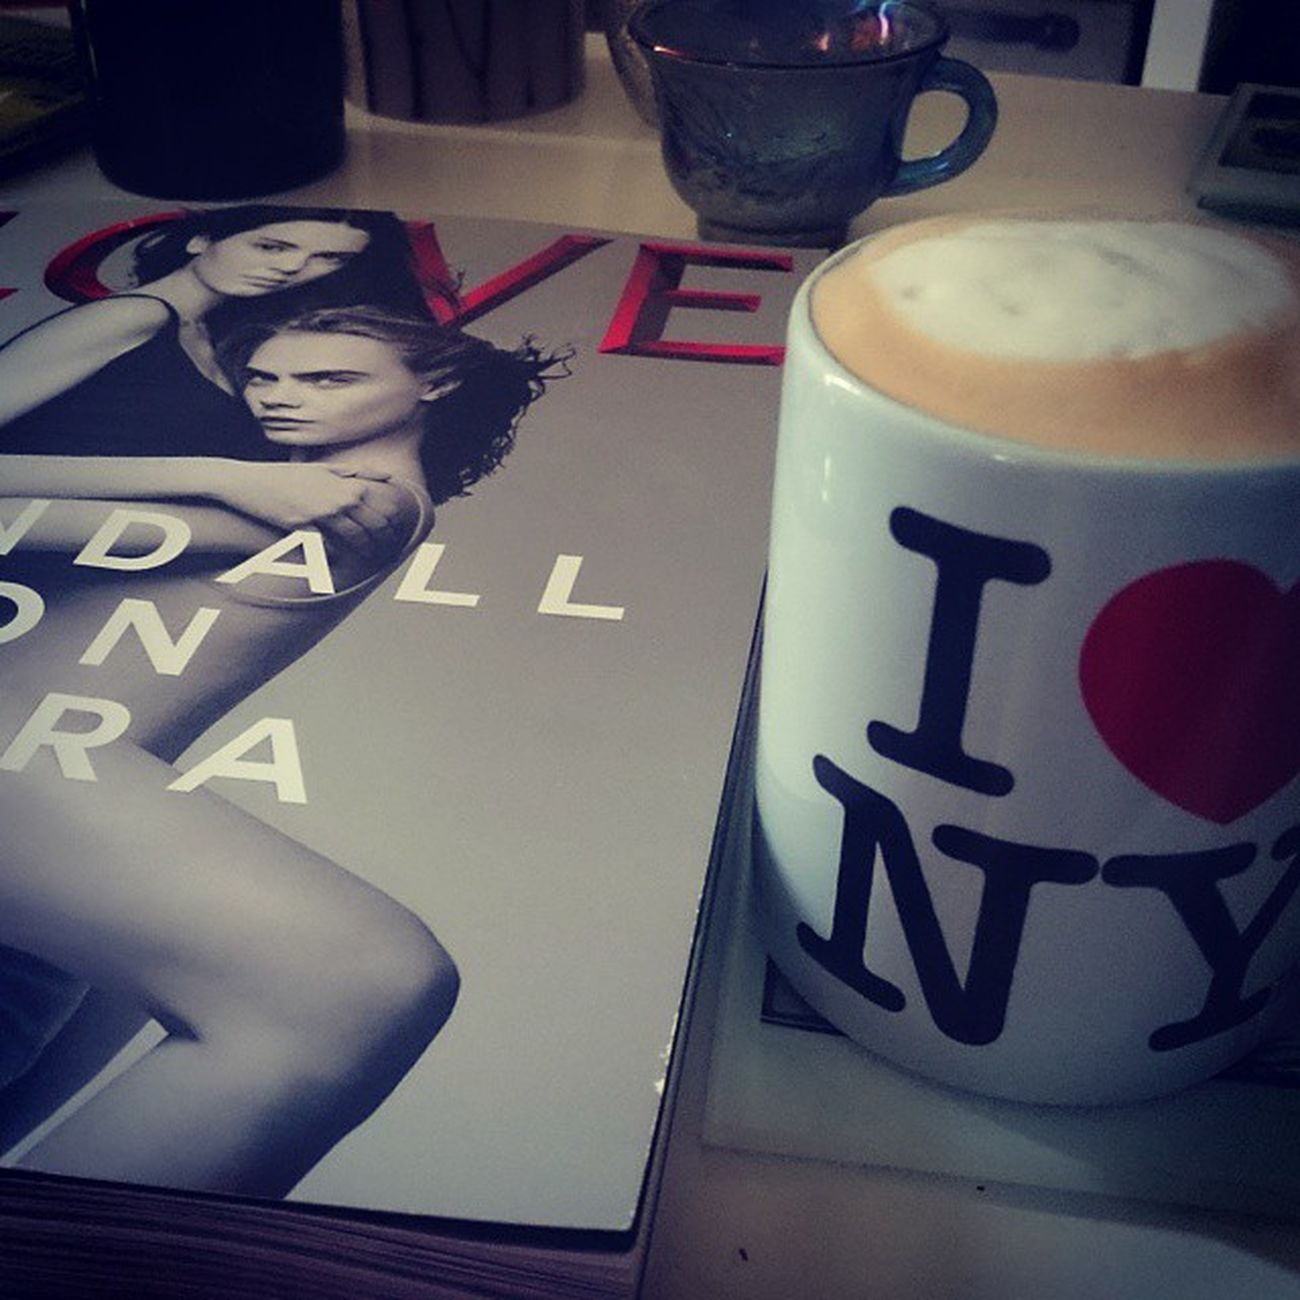 Love days off in the week. Lovemagazine Newyork Coffee Wortharead